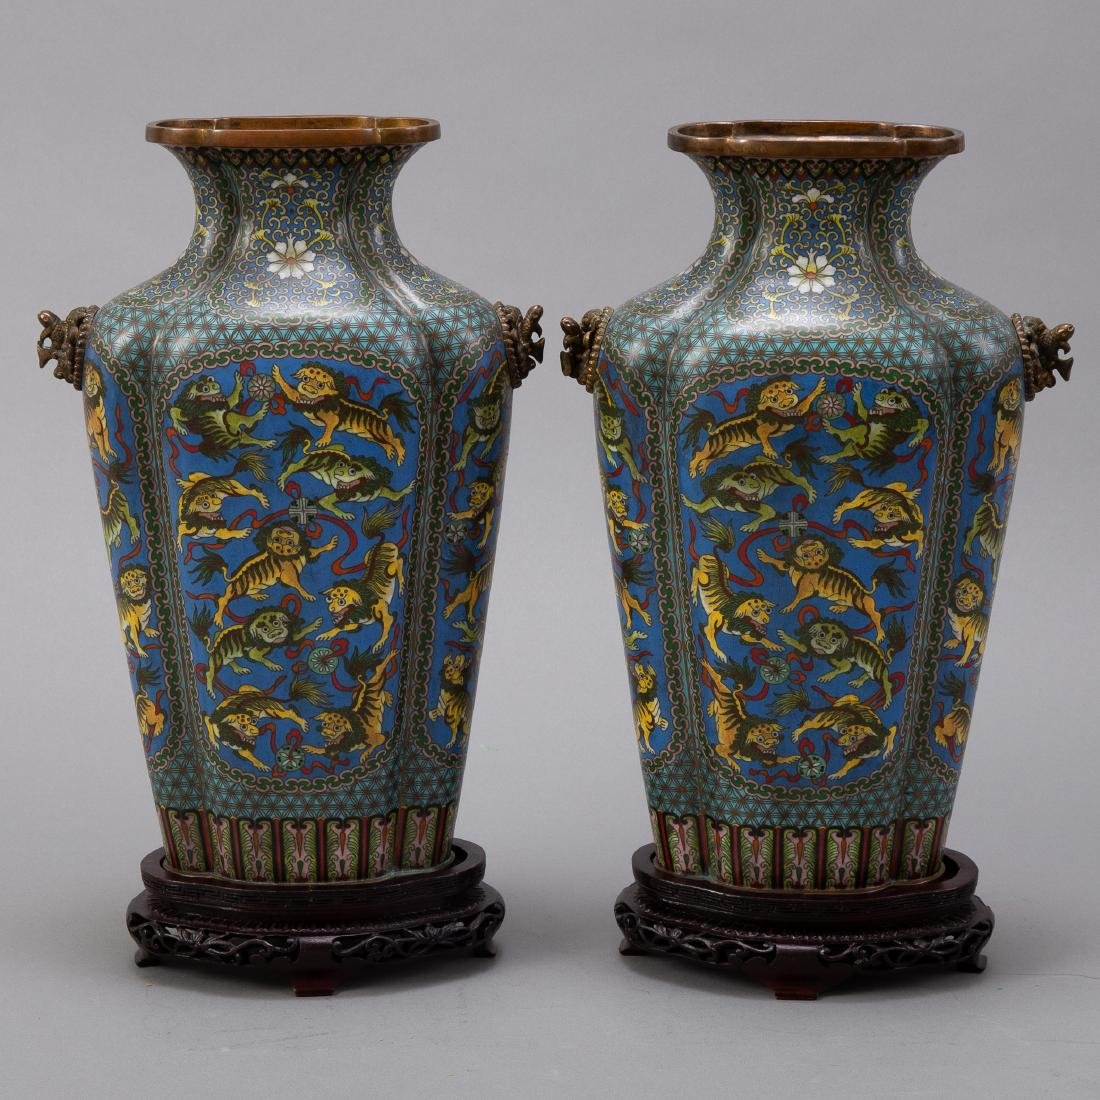 Pr 20th c. Japanese Cloisonne Vases with Foo Dogs - 3